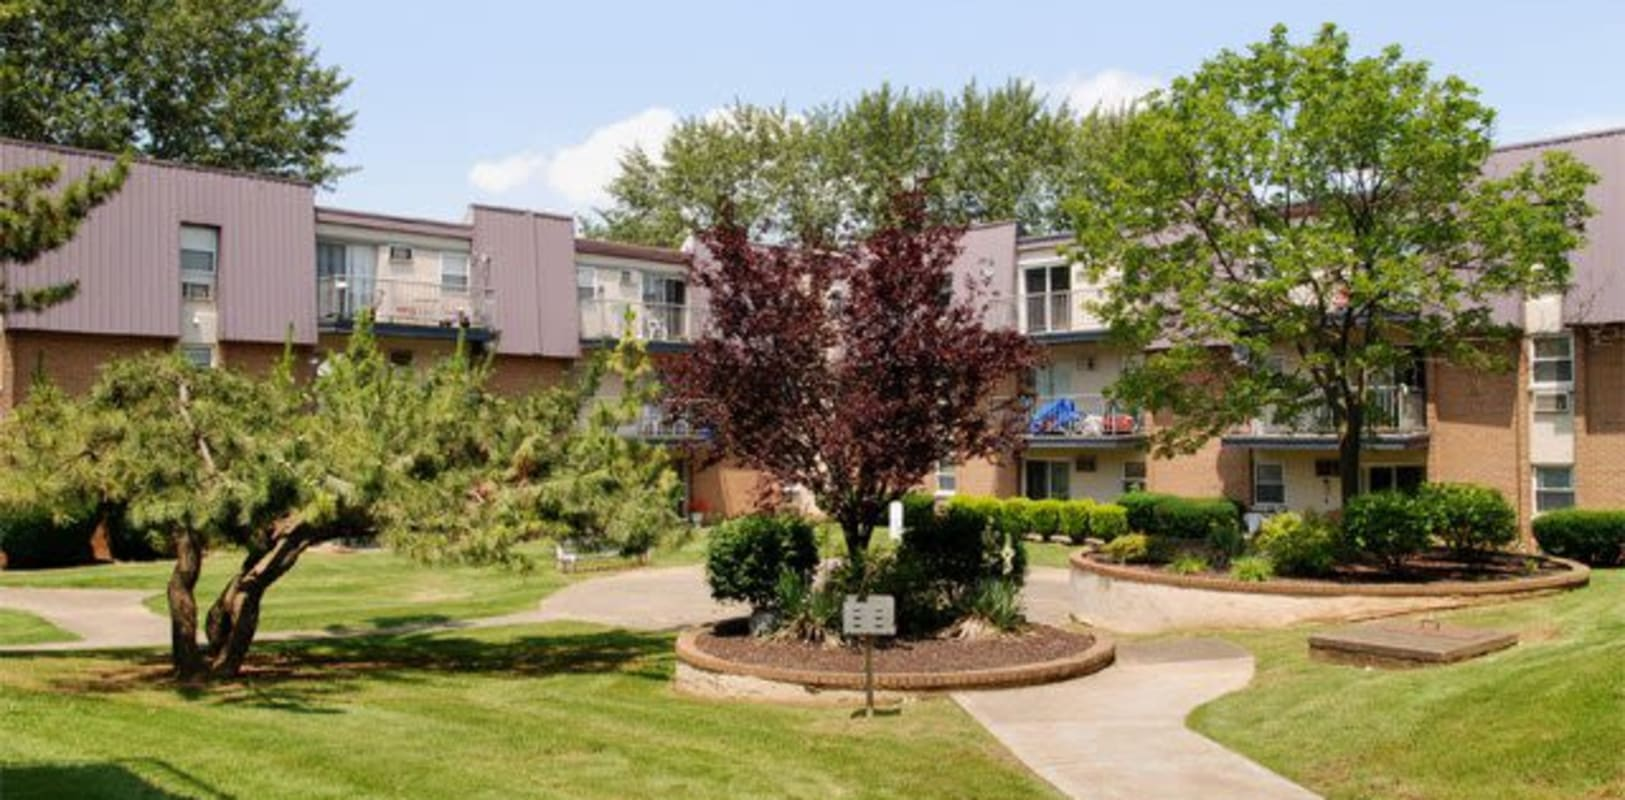 Nice sunny apartment courtyard at Lehigh Valley in Whitehall, {location_state_name}}